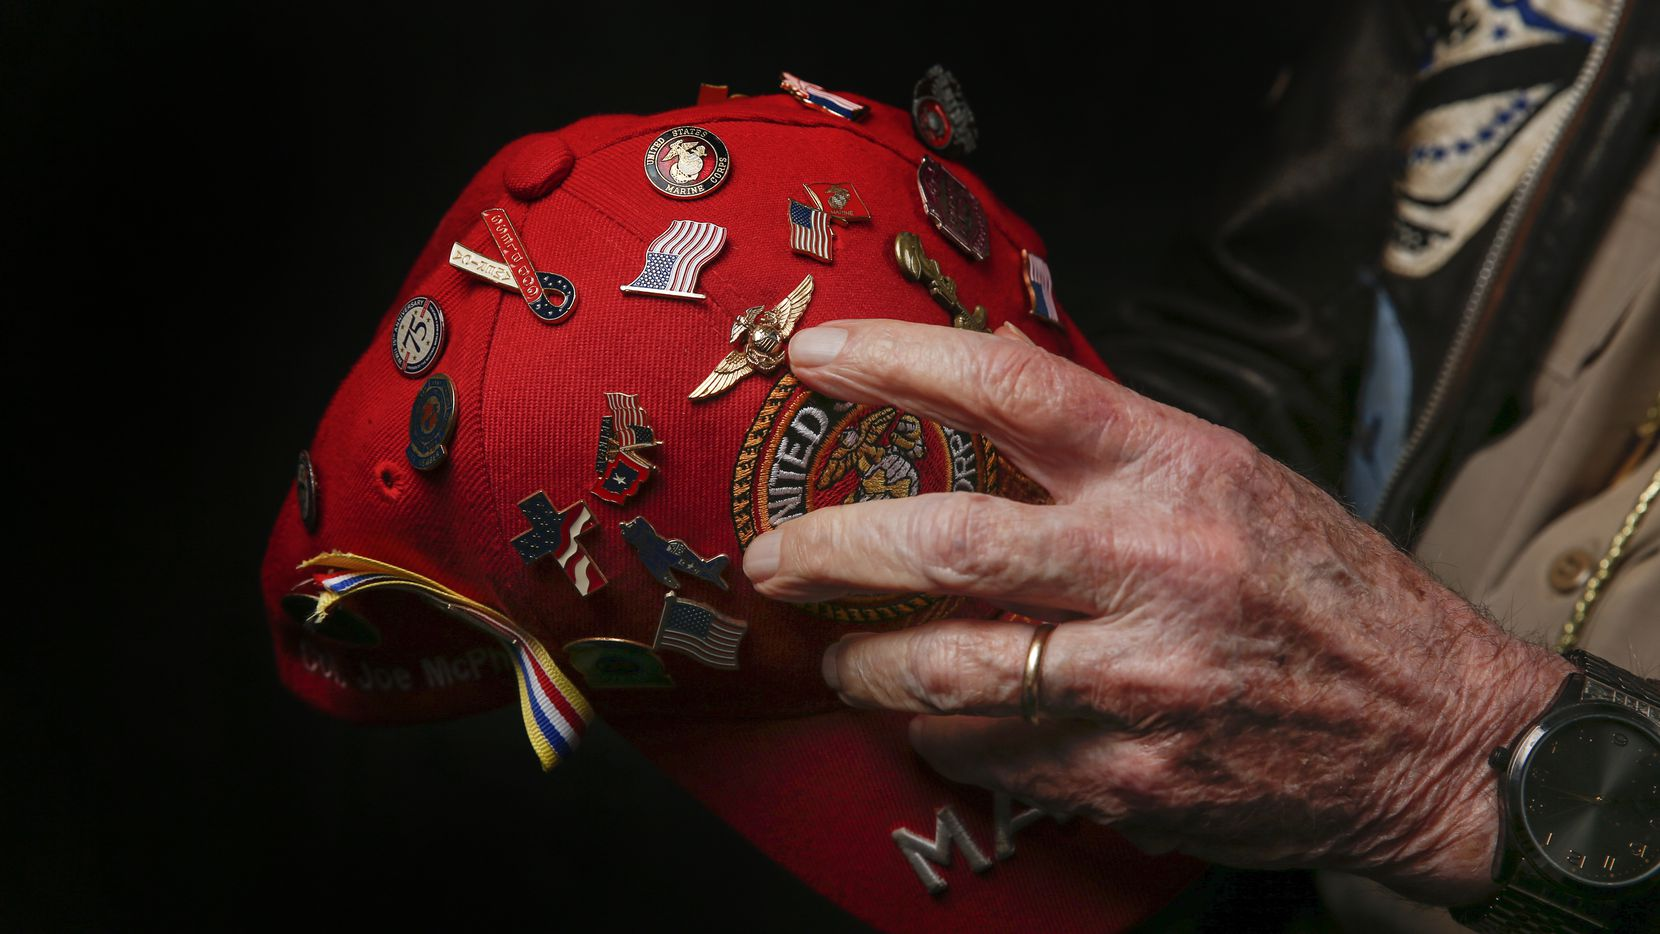 Joe McPhail, 98, of Houston, Texas, a colonel who served as a fighter pilot in the Marines' World War II VMF-323 Death Rattlers, is photographed during the Wings Over Dallas Airshow on Saturday, Oct. 26, 2019 in Dallas.